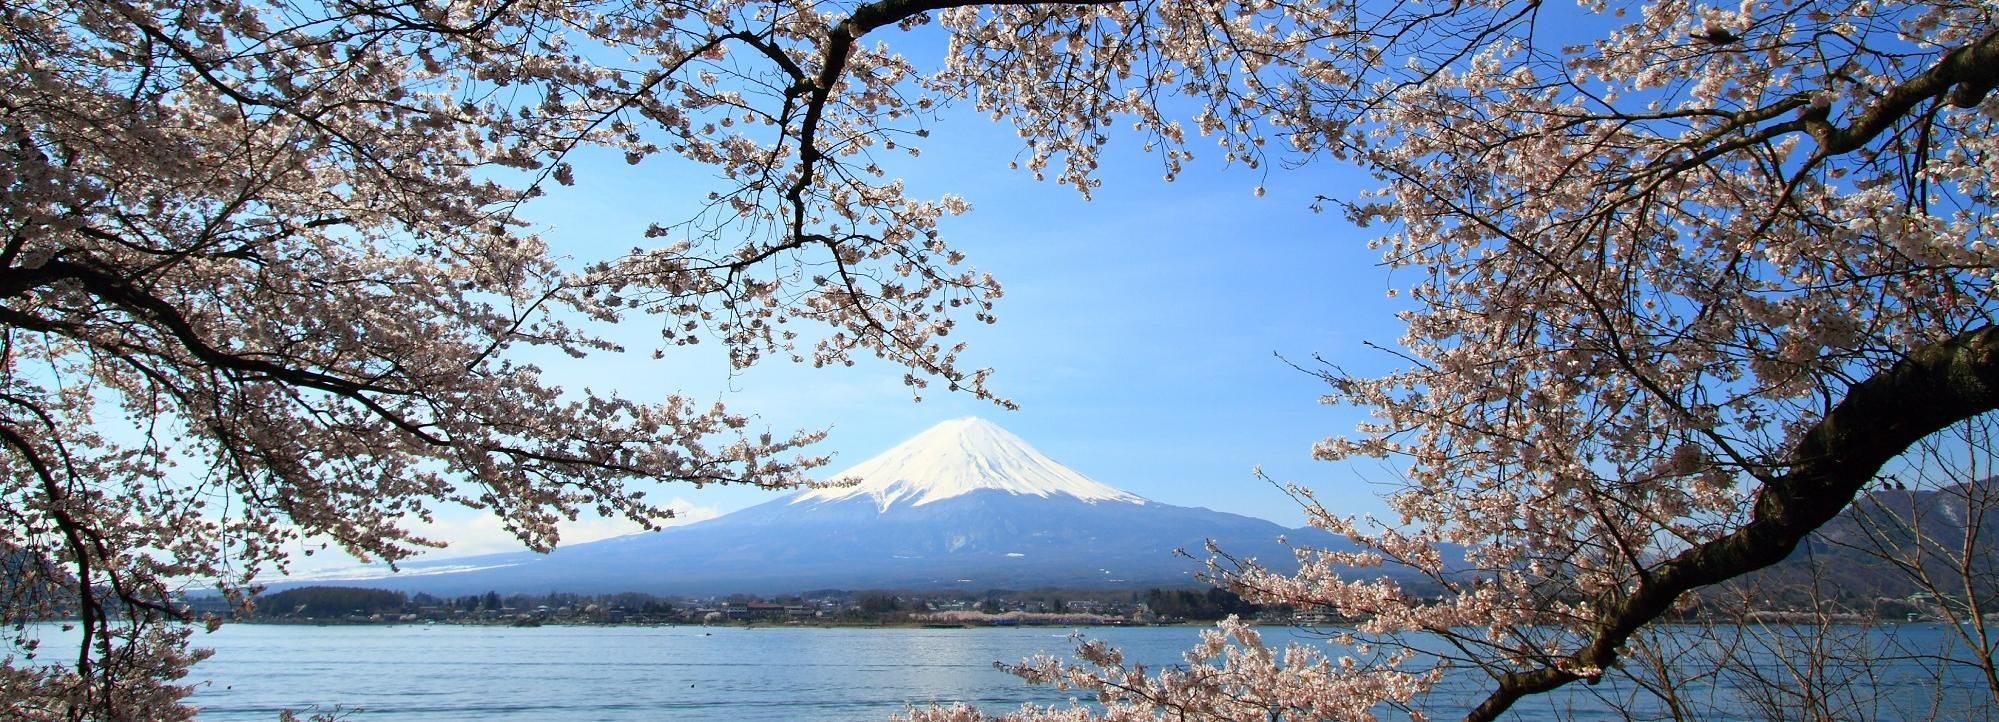 Mount Fuji Full-Day Tour from Tokyo with Lunch